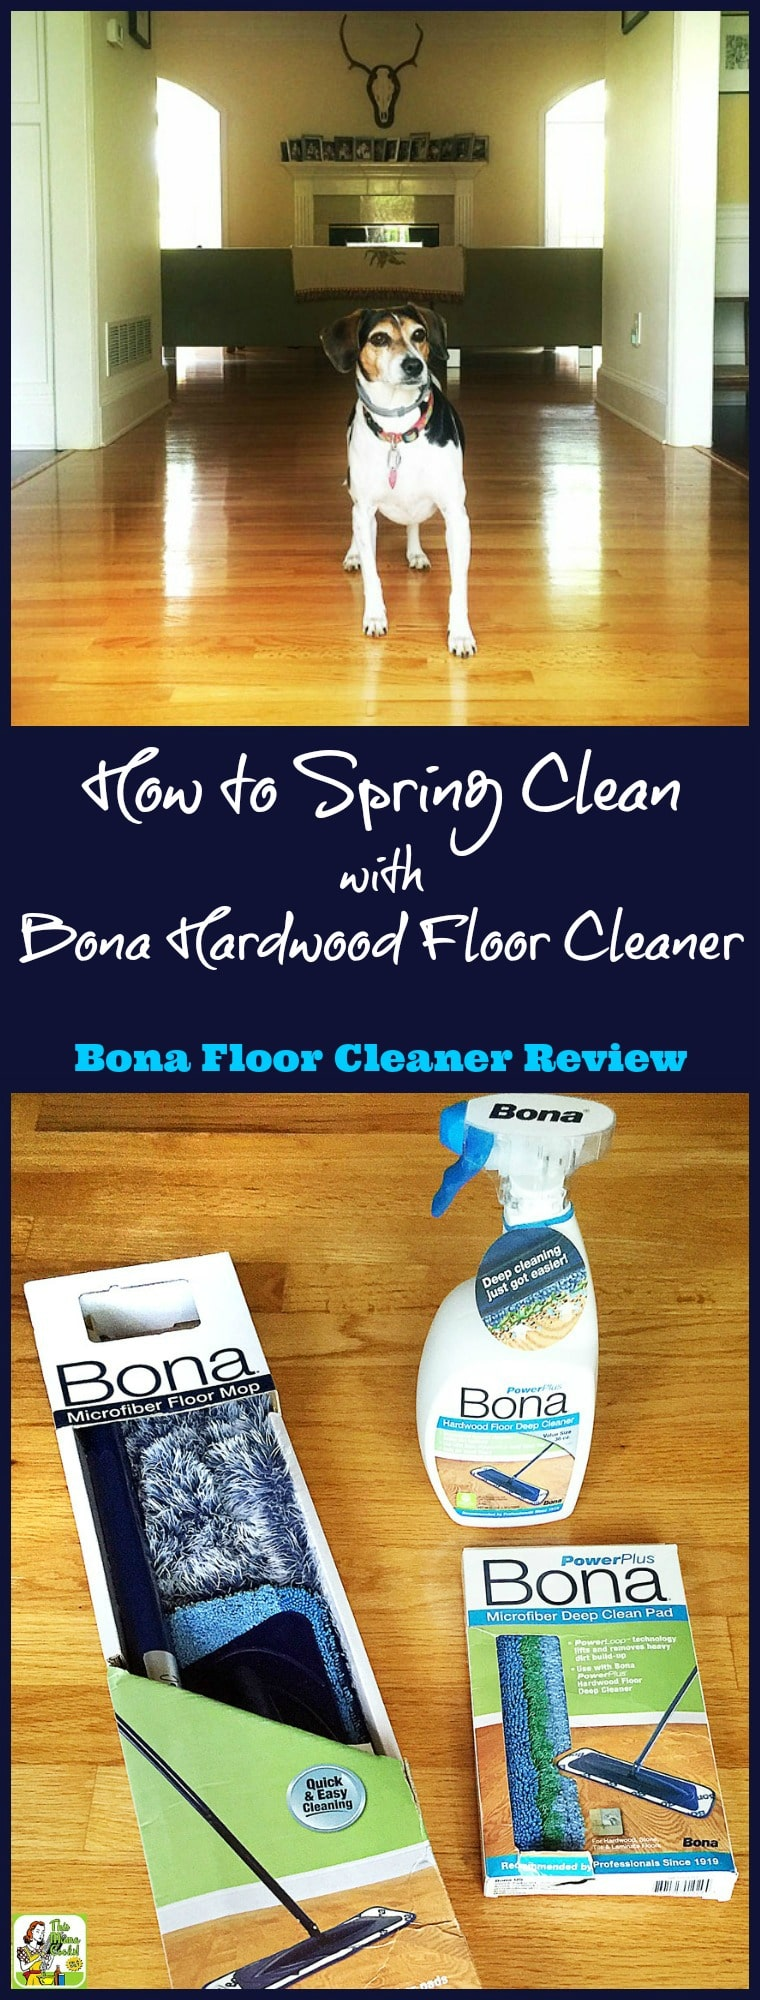 Got hardwood floors? Learn how to spring clean with Bona hardwood floor cleaner - a Bona floor cleaner review. Find out where to buy Bona hardwood floor cleaner and supplies.